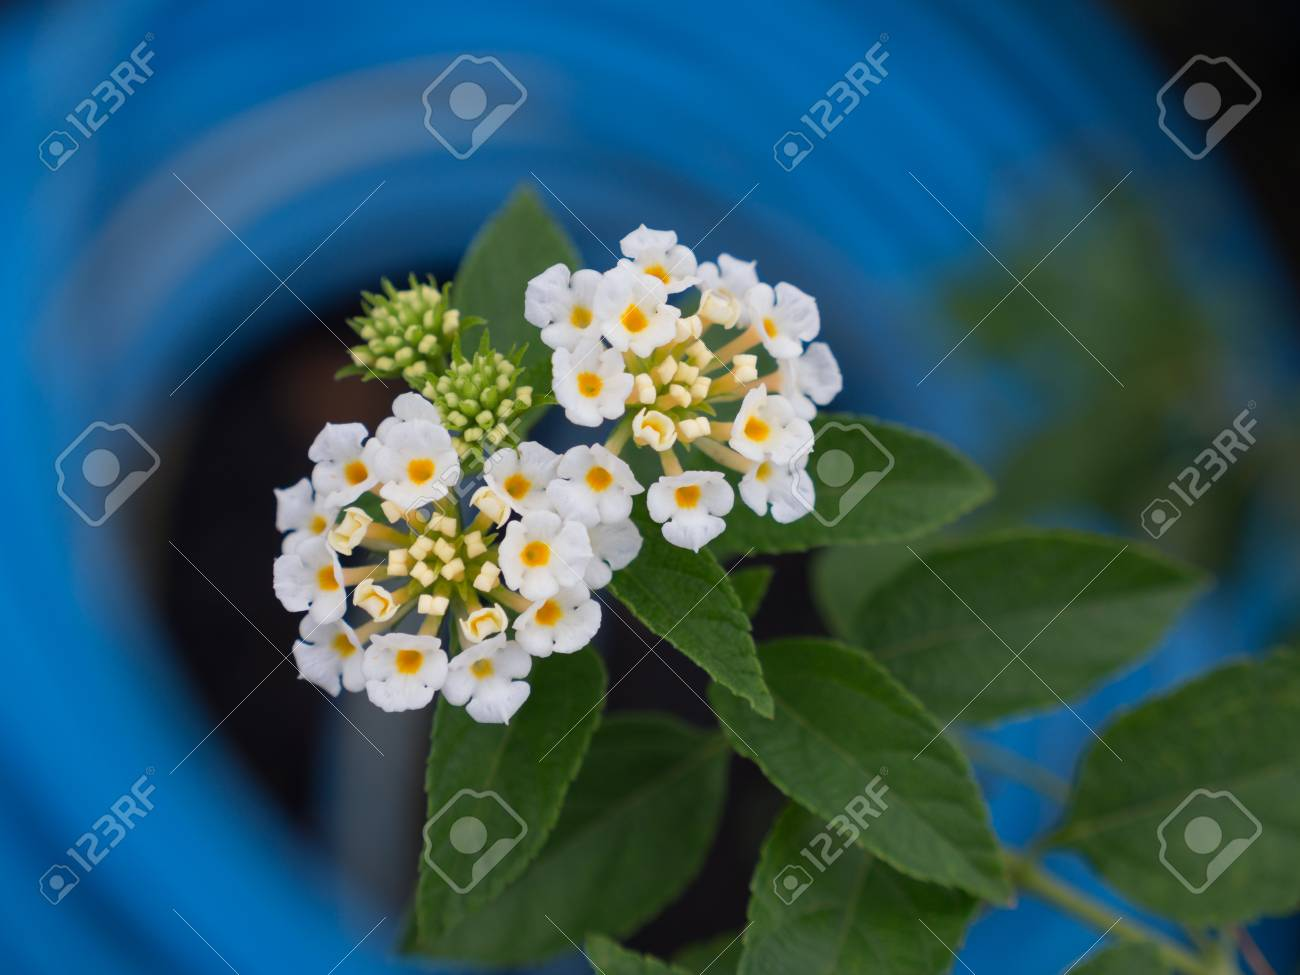 The White Hedge Flowers Blooming , In Behind The Blue Circle Stock ...